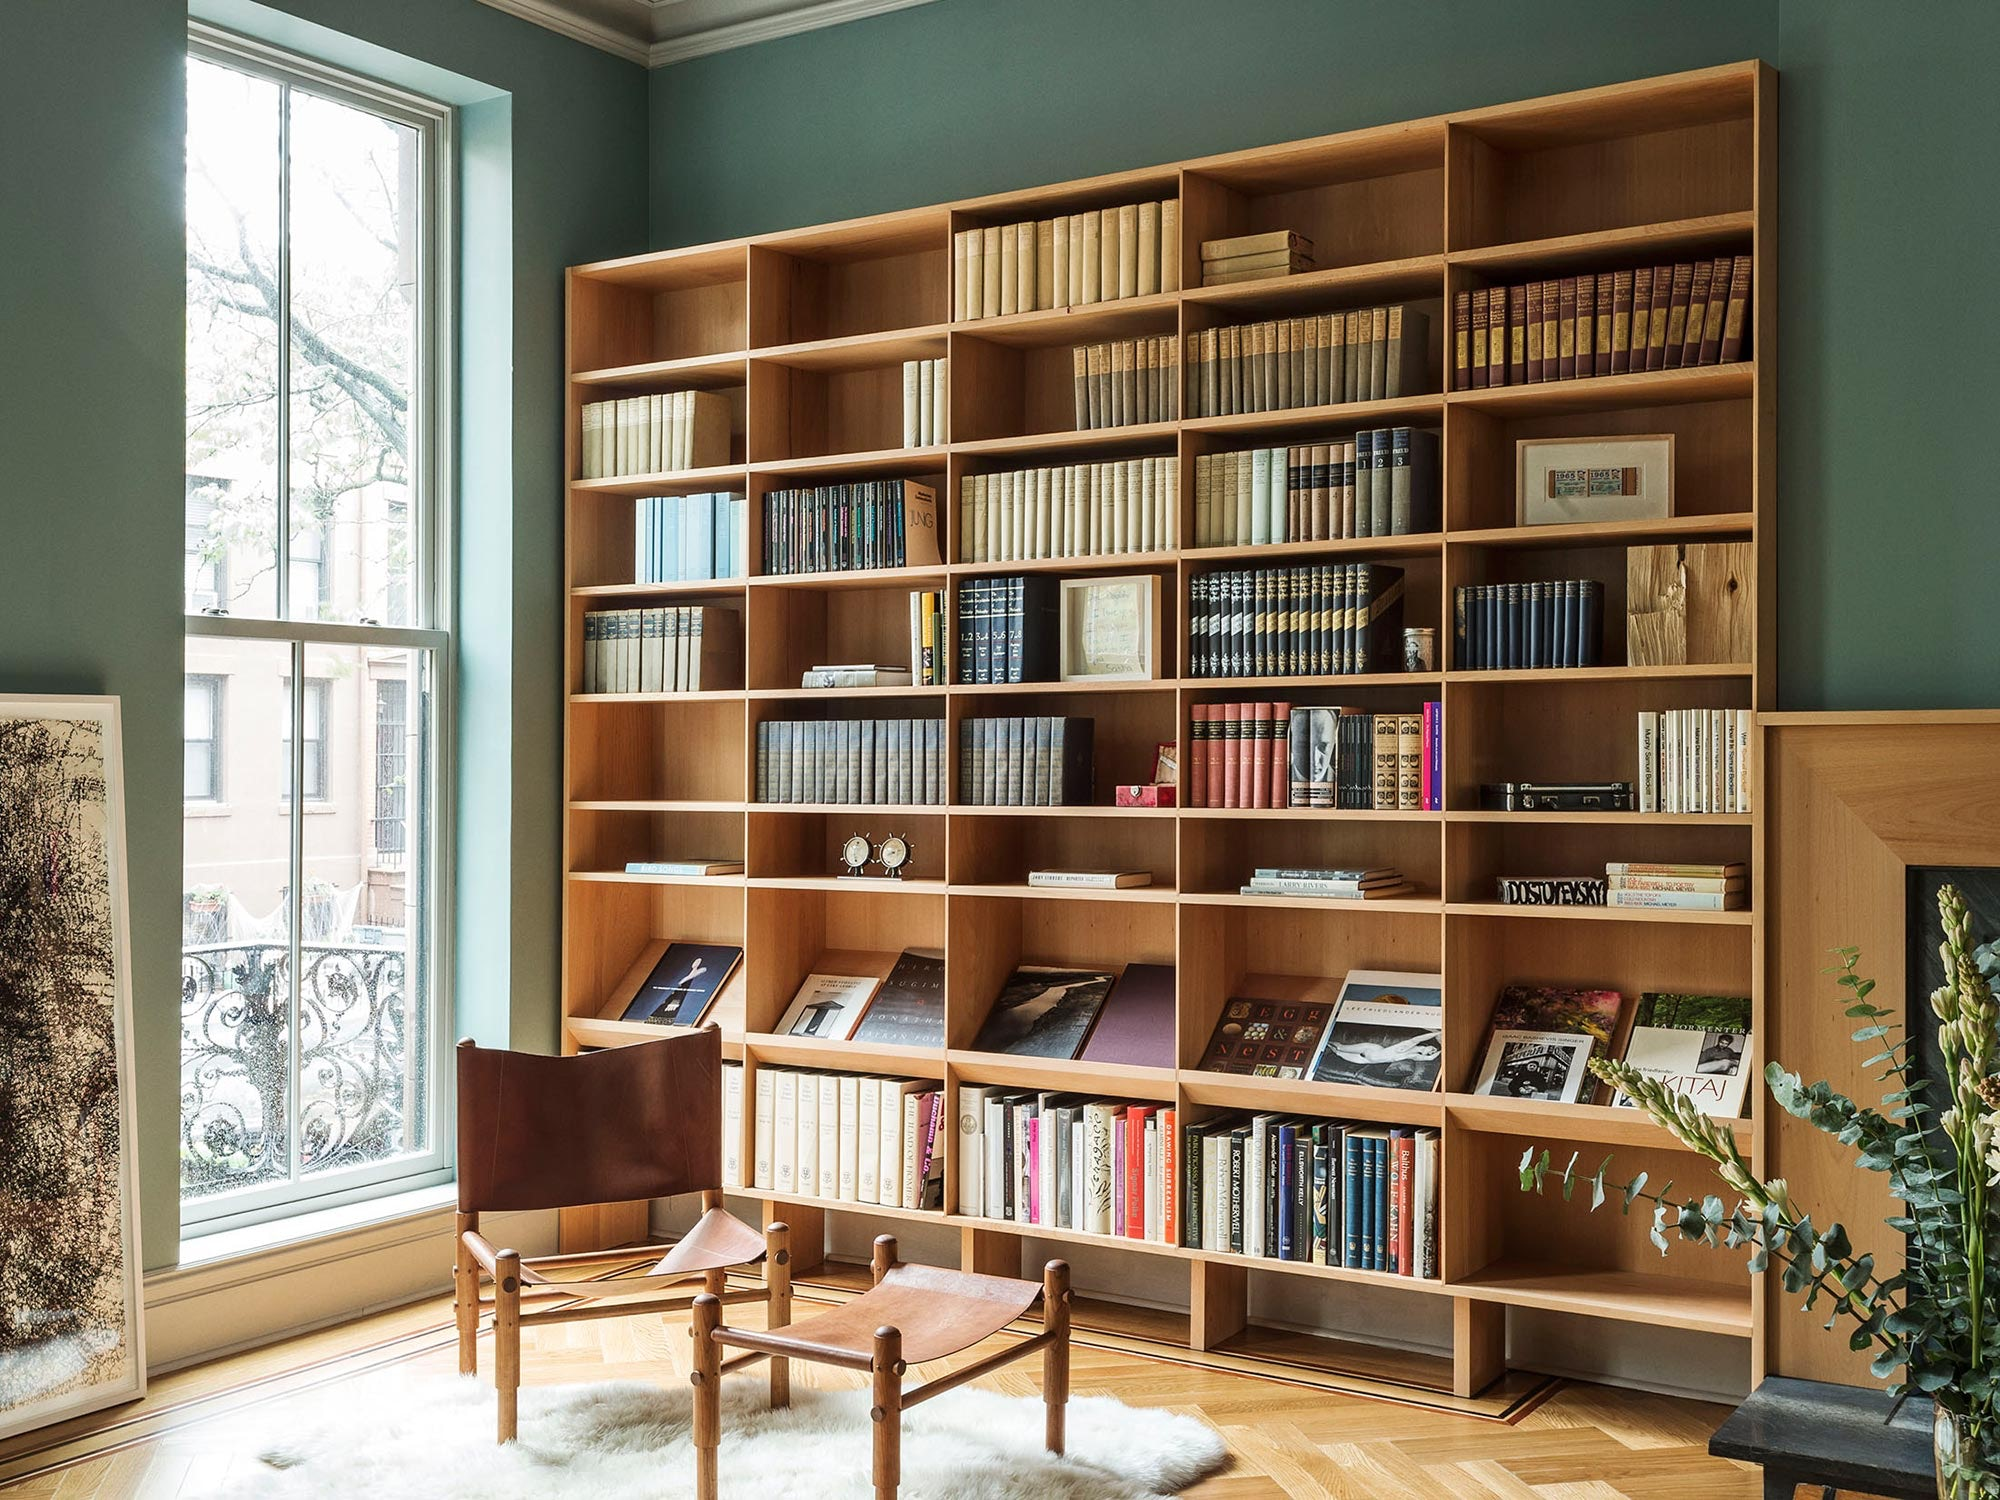 gallery image for Boerum Hill Townhouse